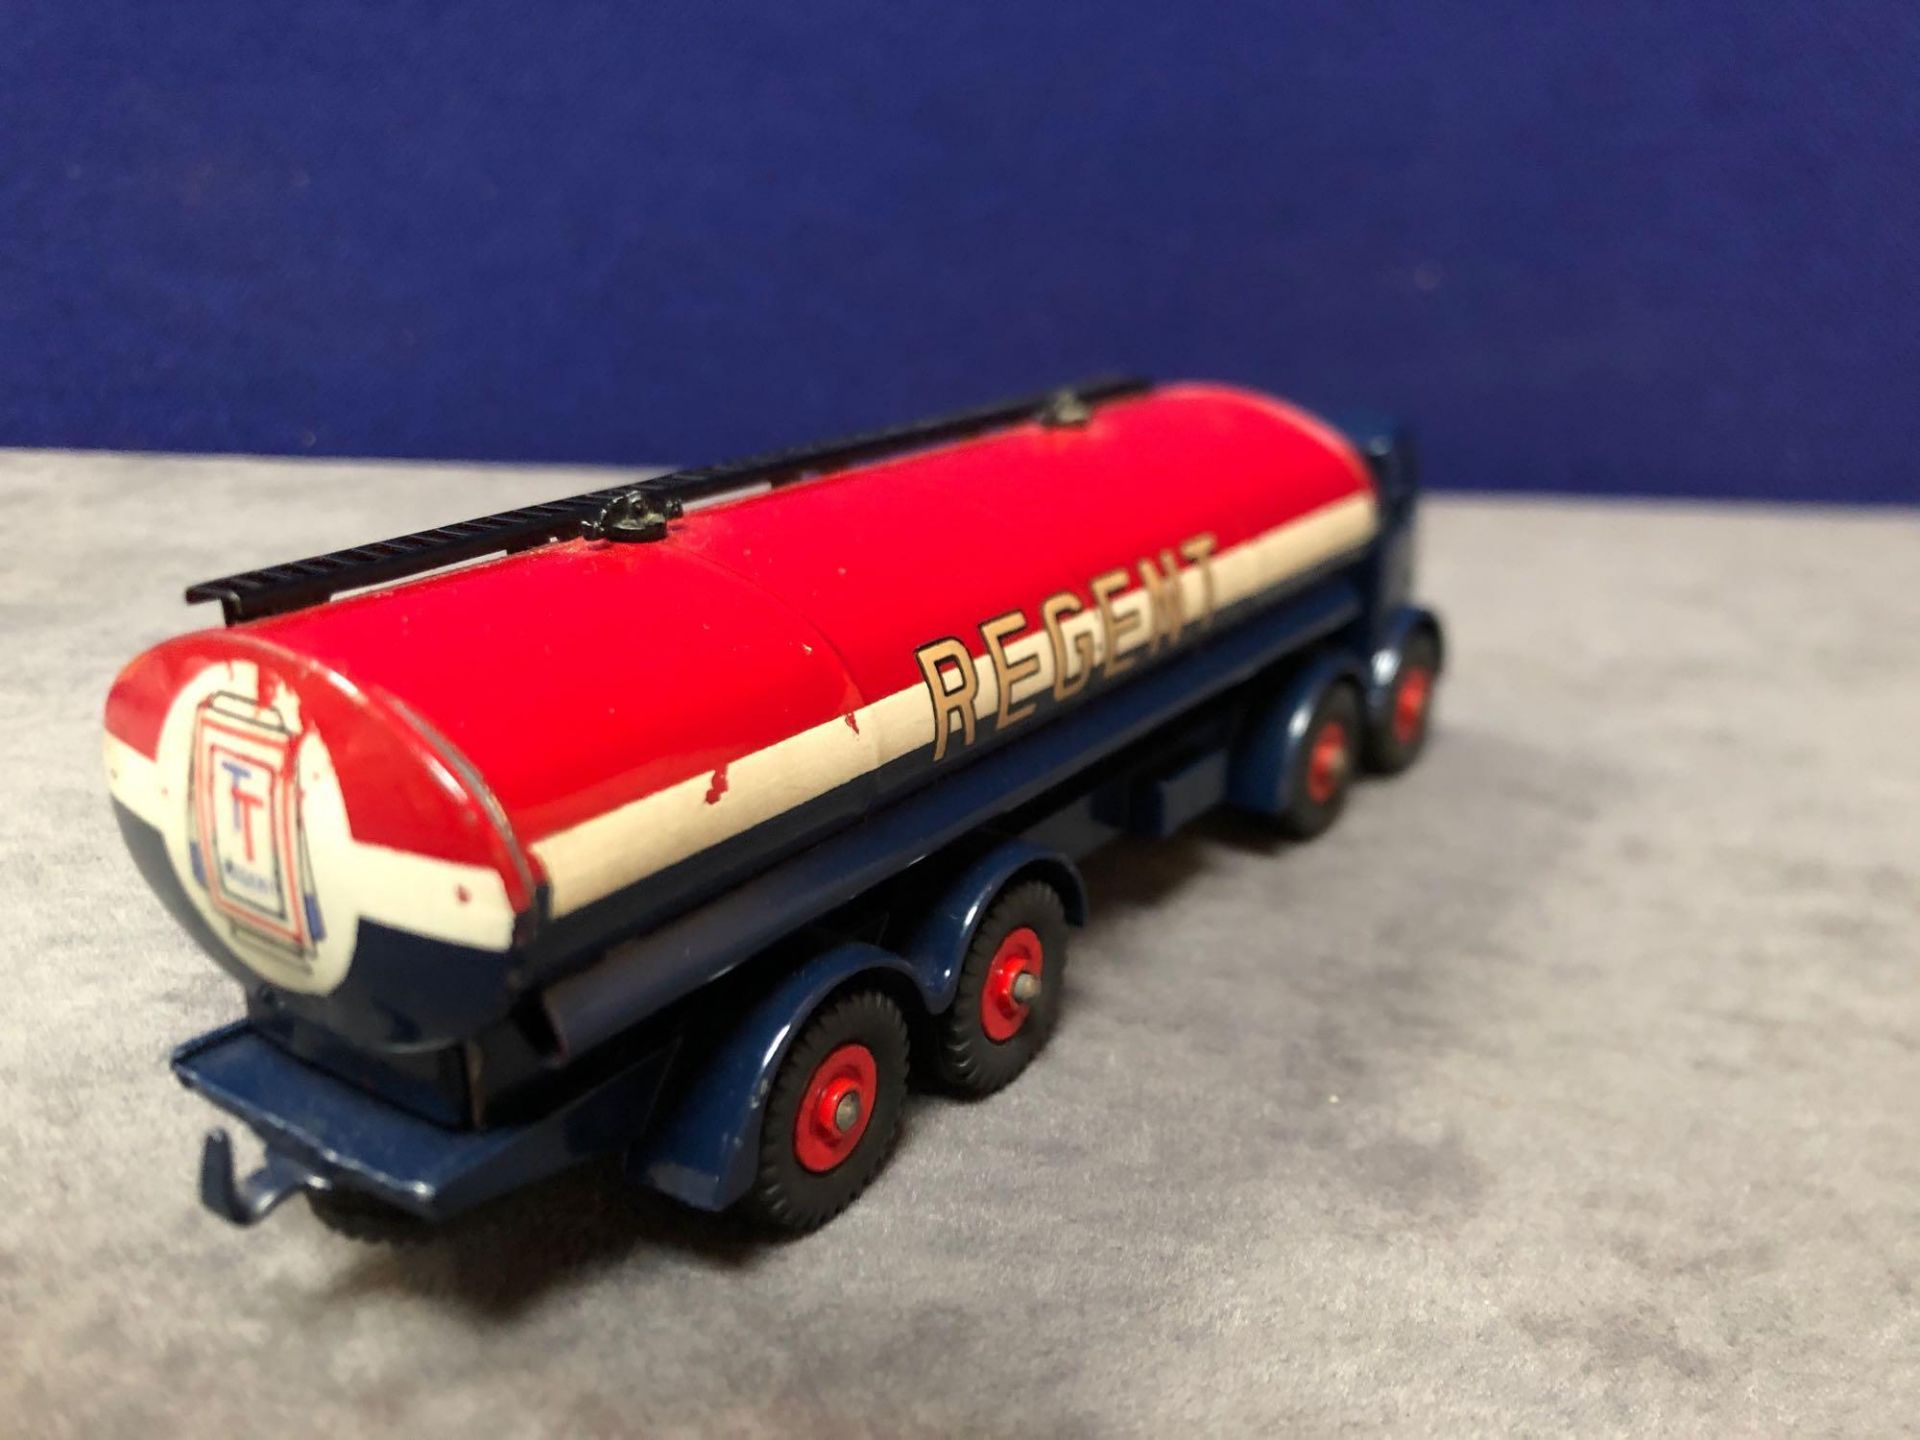 Dinky Supertoys Diecast #942 Foden 14-Ton Tanker Regent in excellent condition with bright paint - Image 3 of 4